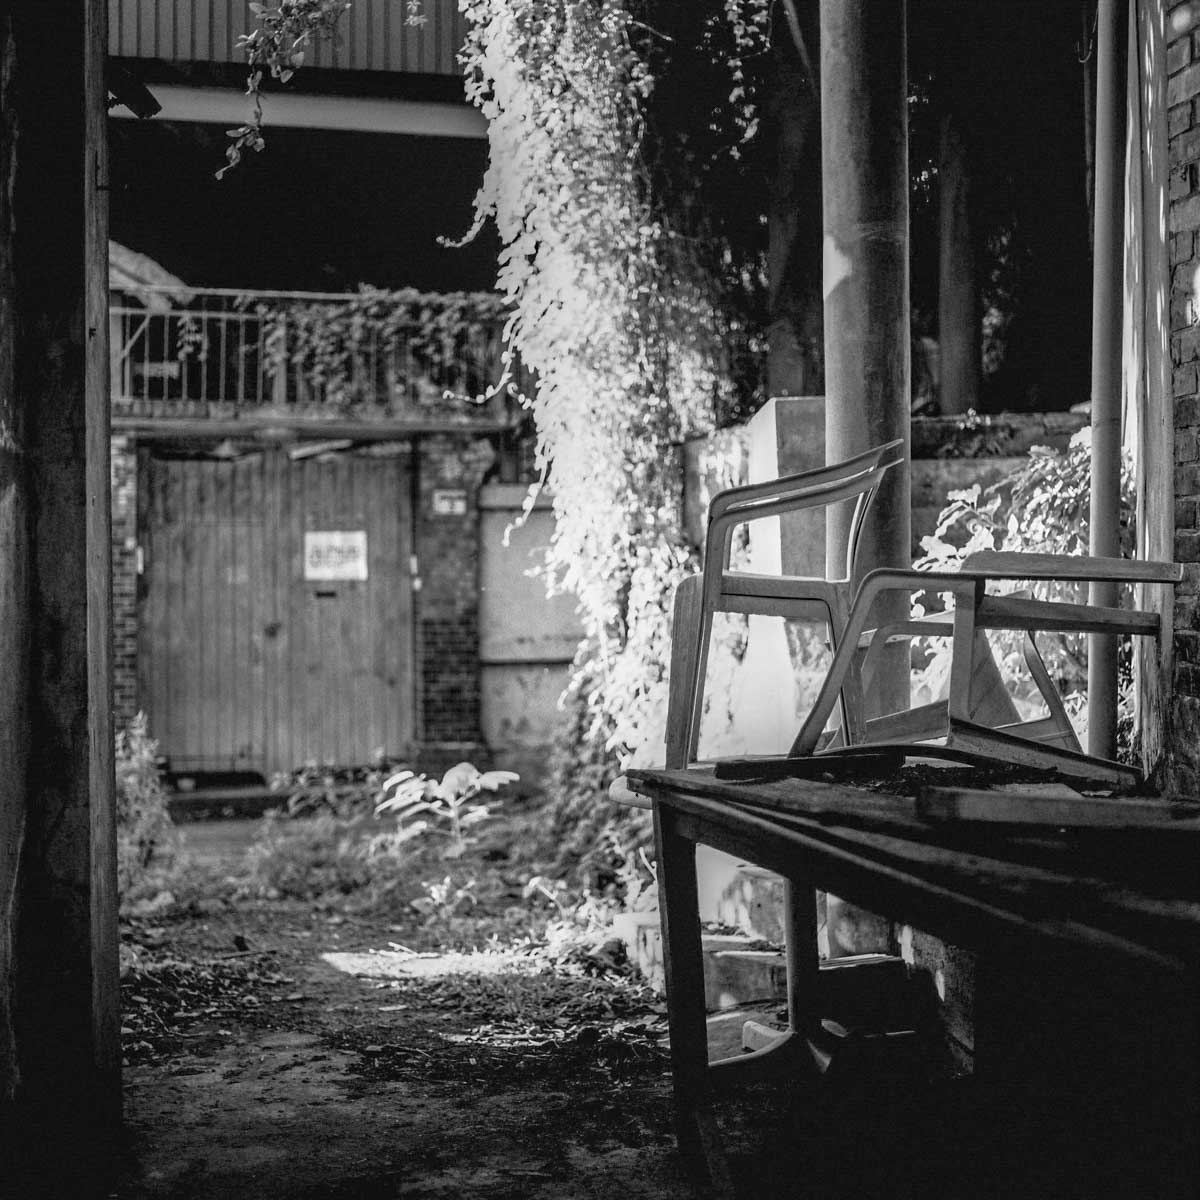 Party's over - Shot on Rollei Infrared 400 at EI 400 - Black and white infrared film in 120 format shot as 6x6 - No filter